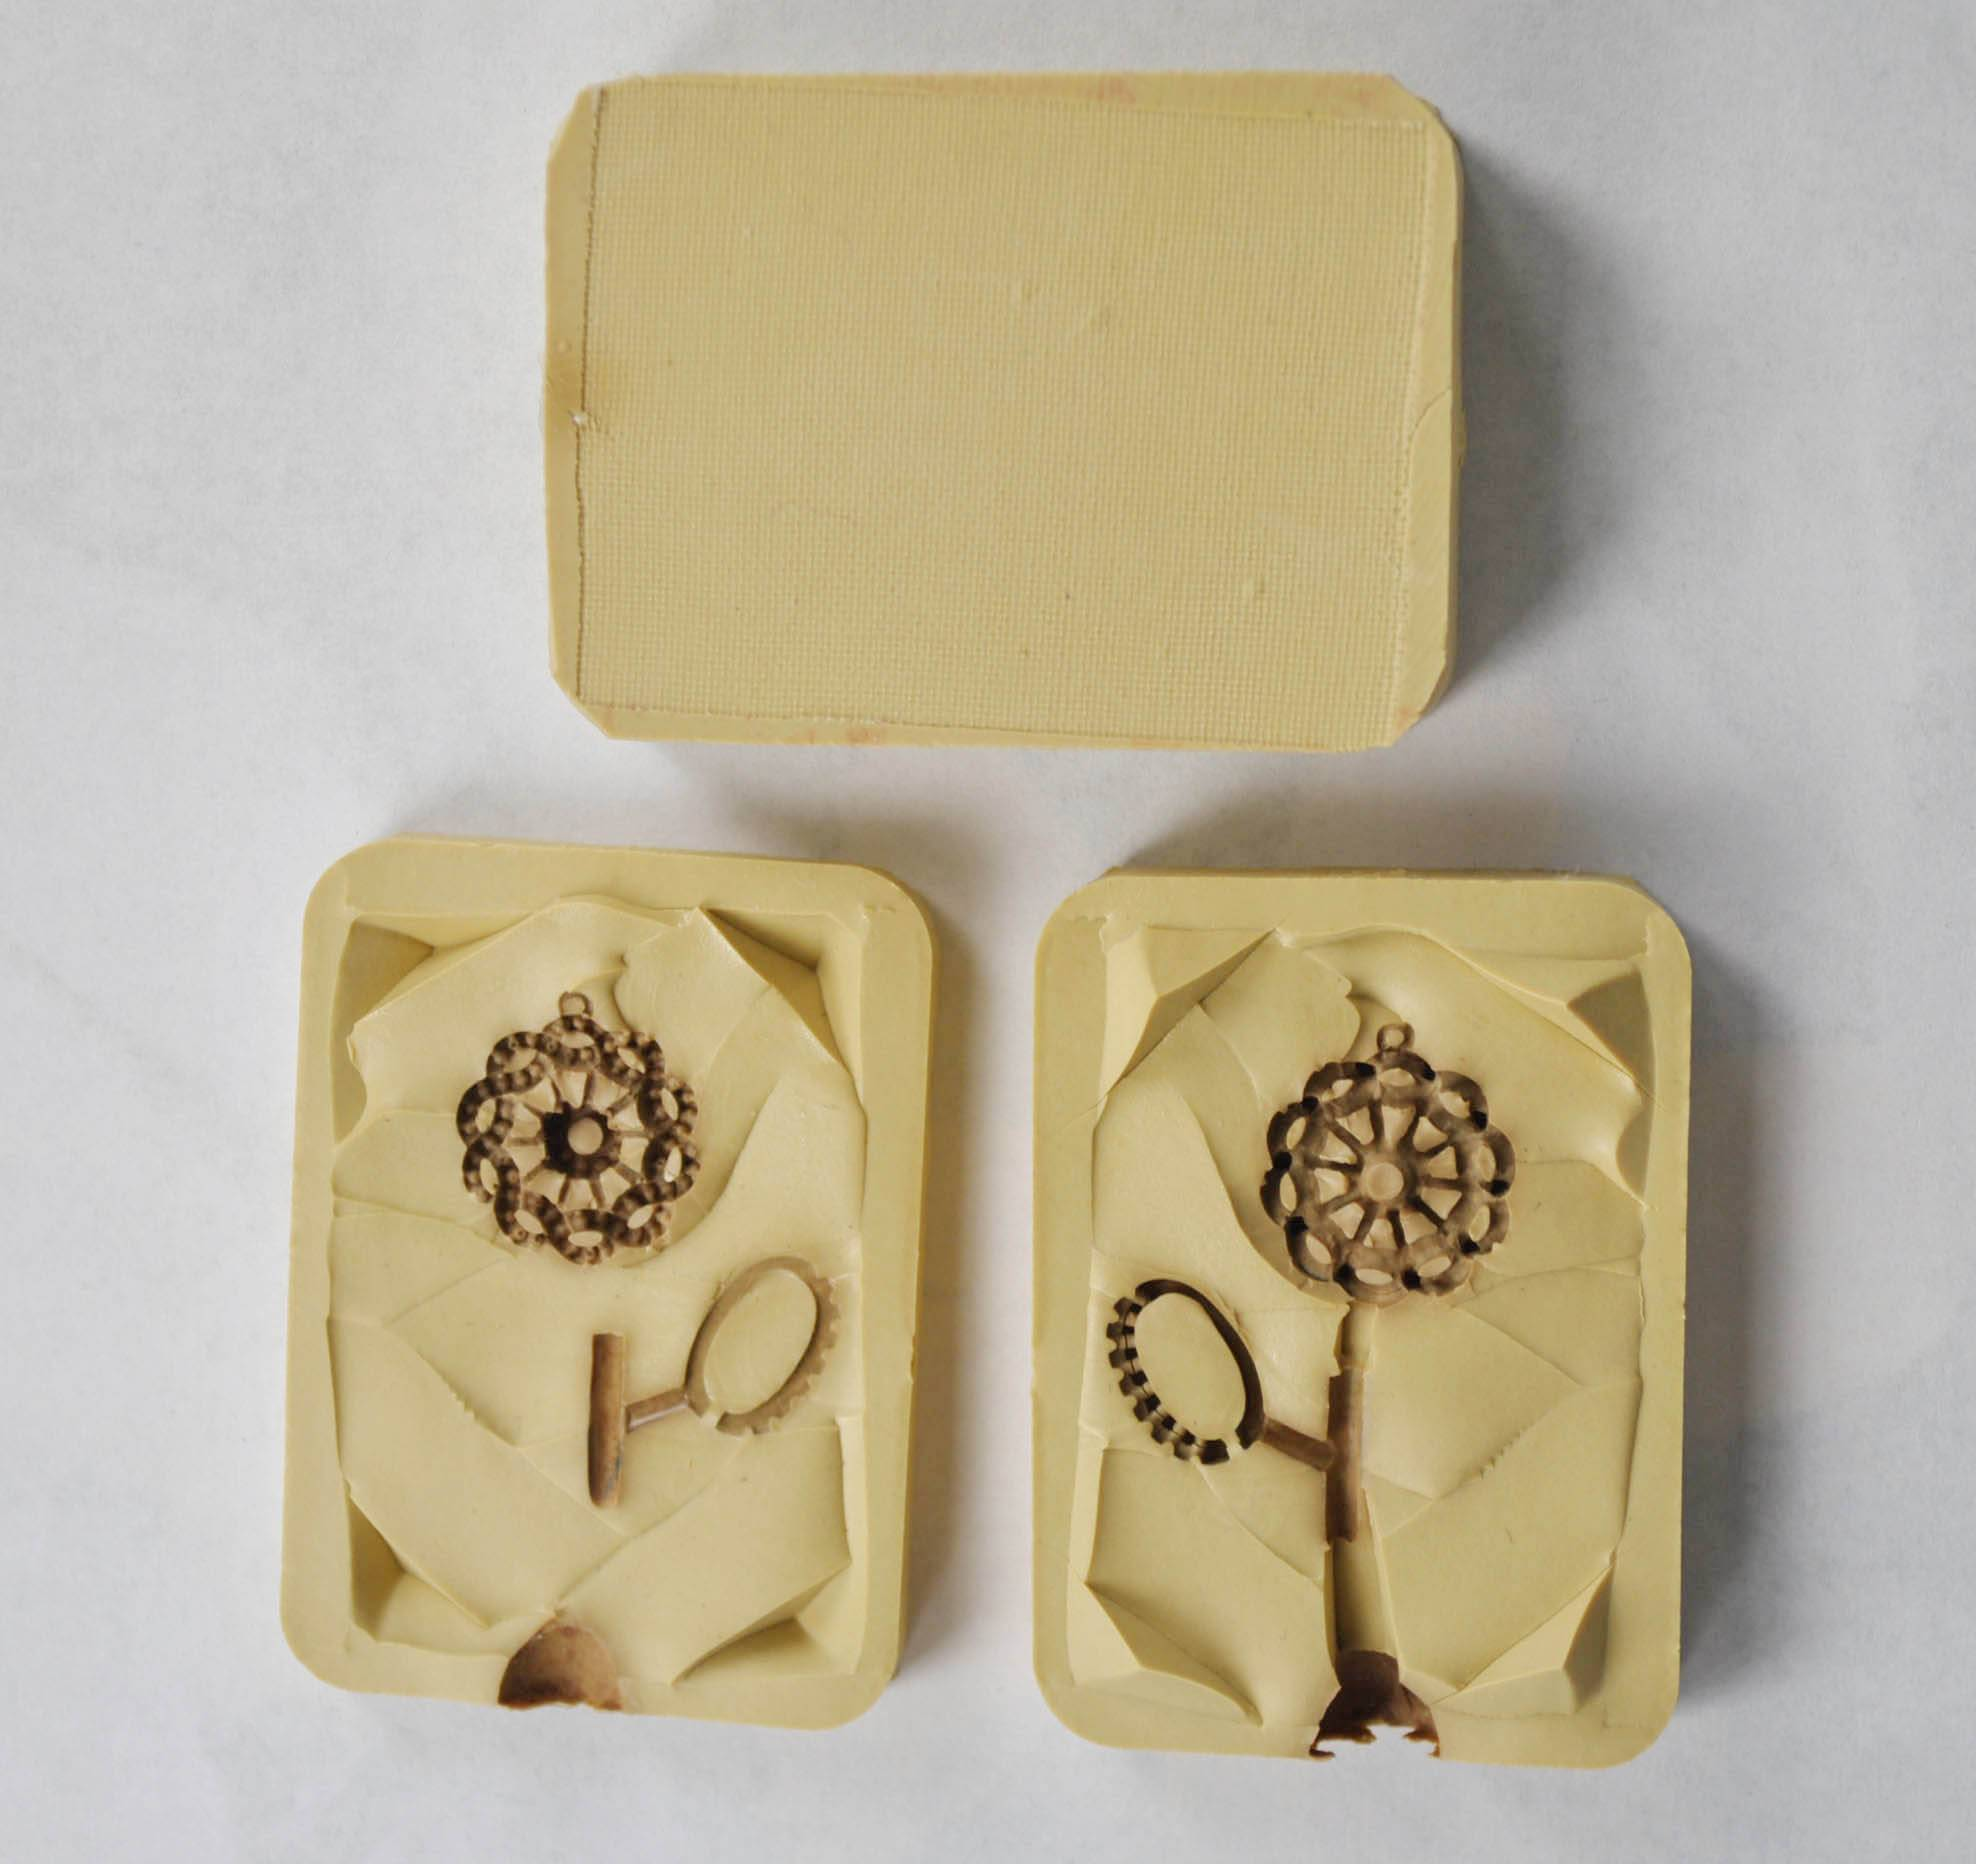 jewelry rubber mold,silicone mould,jewelry pattern,jewelry master model maker